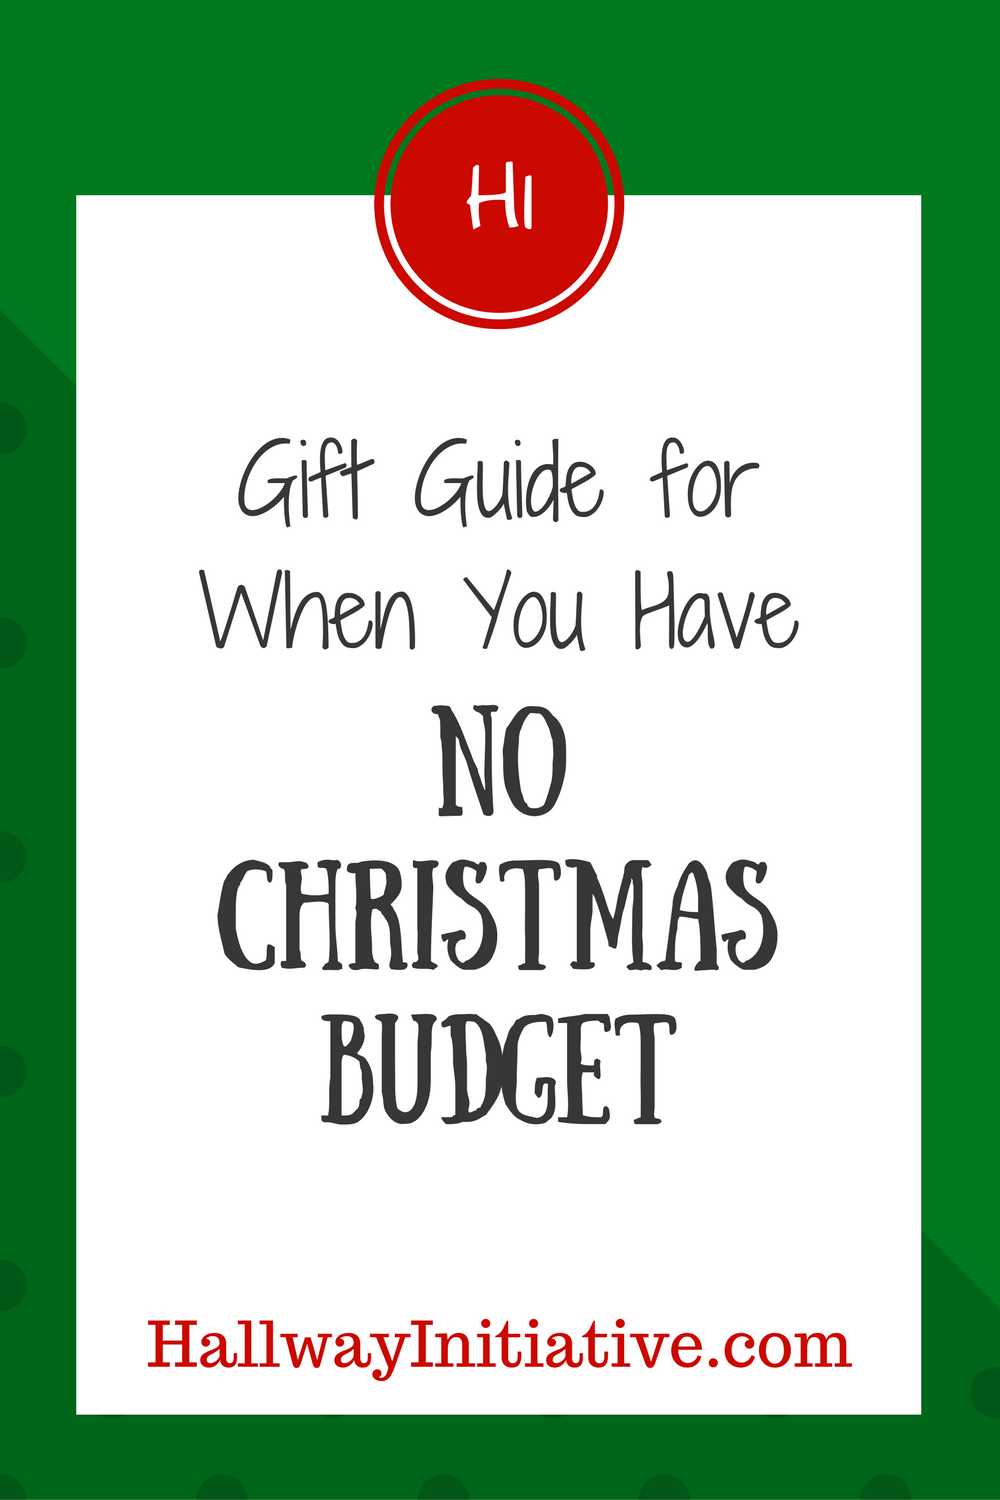 gift guide for when you have no Christmas budget